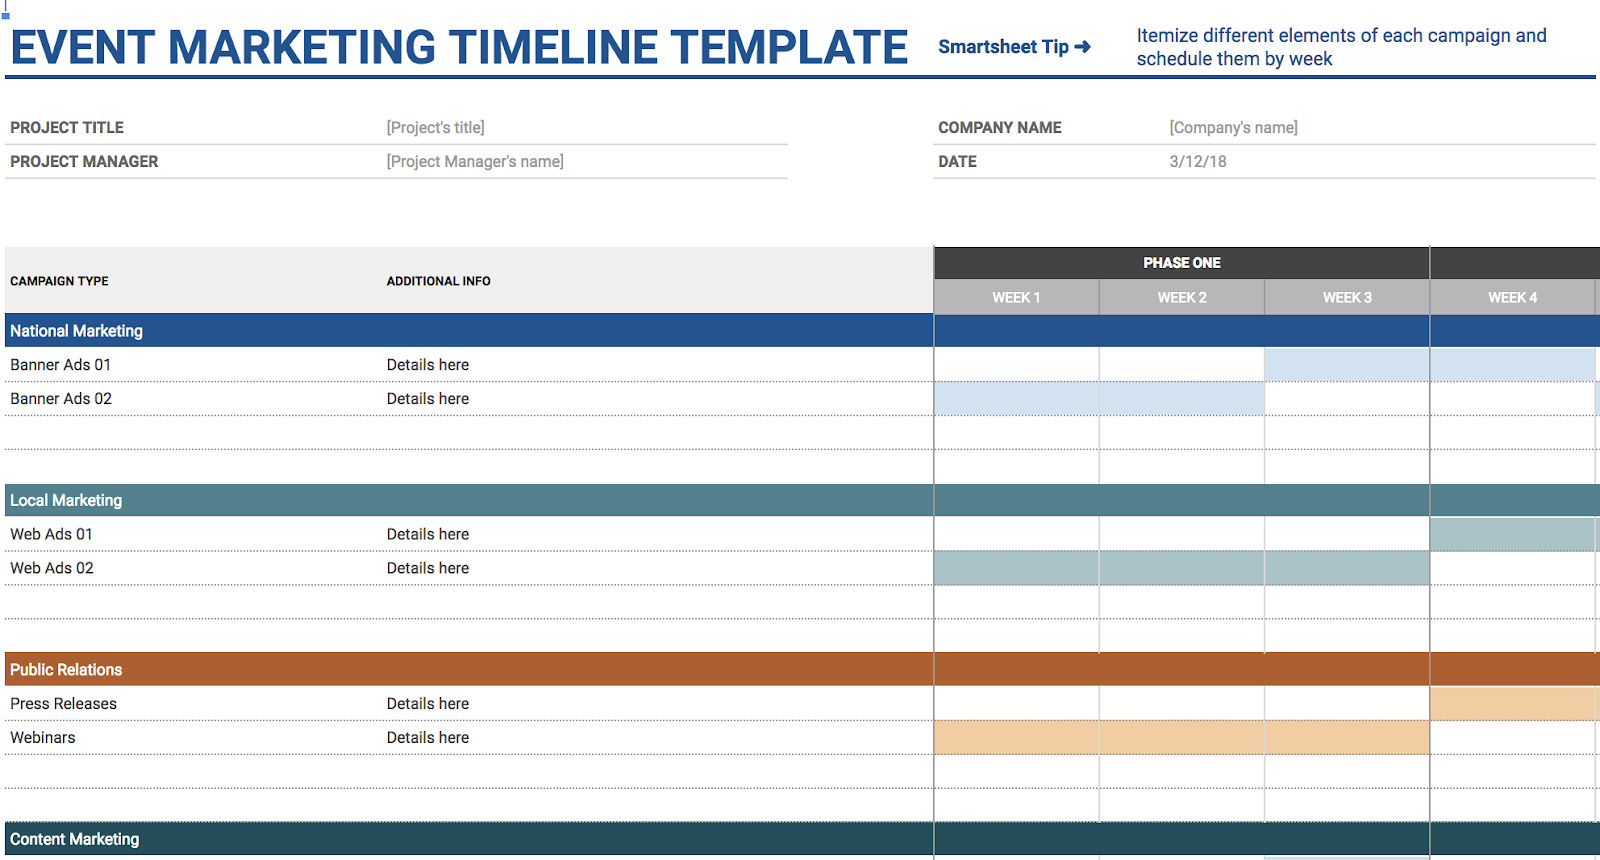 The Template Is Already Organized With All Necessary Categories For Planning An Event Reducing Time You Spend On Tedious Manual Input